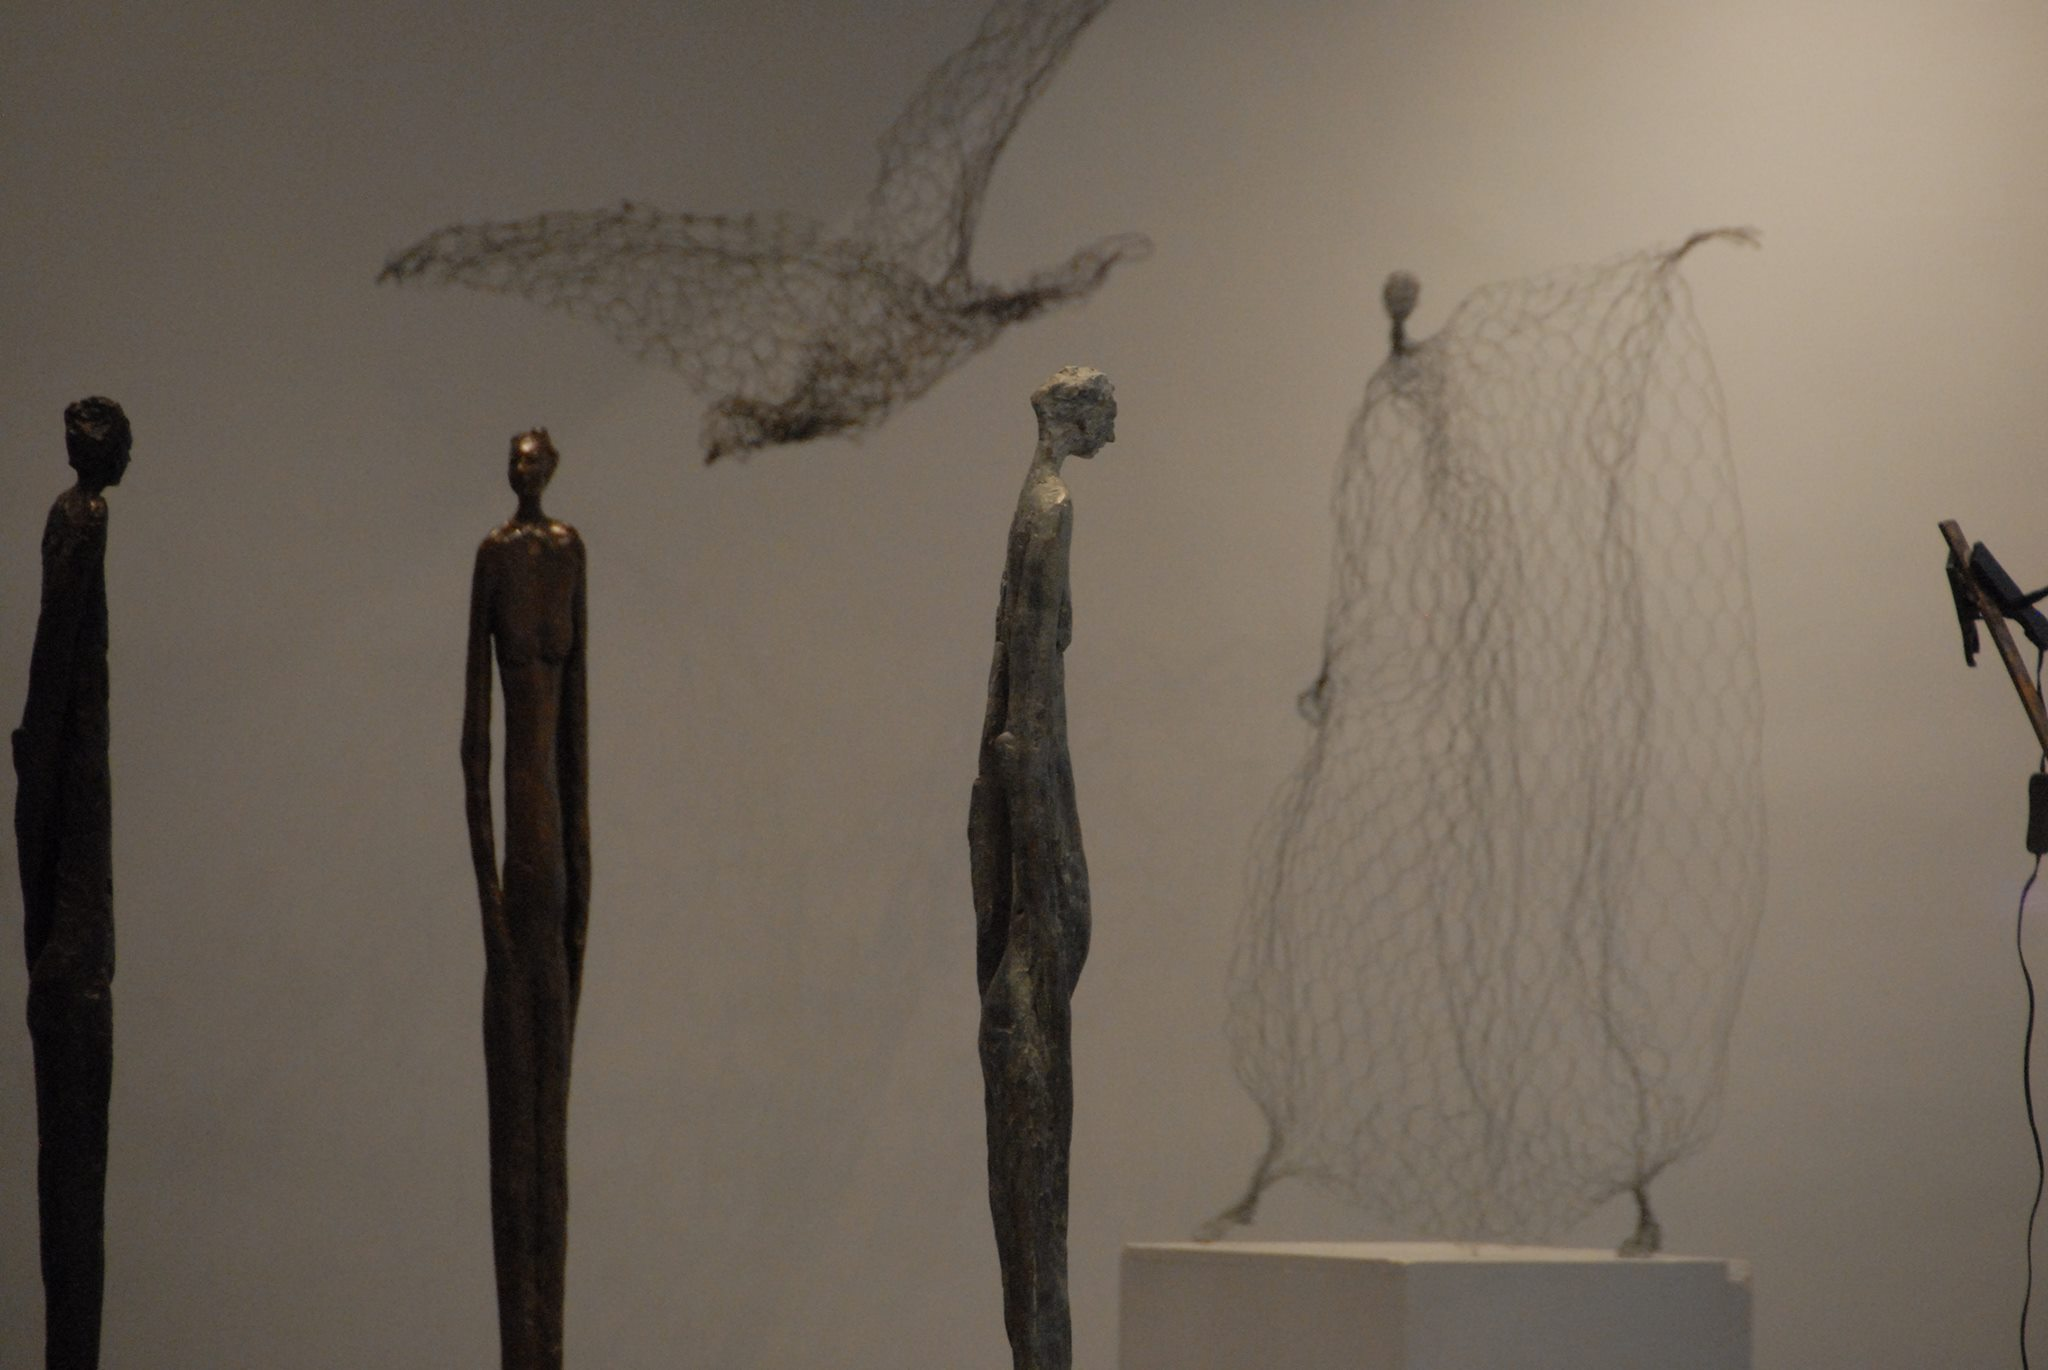 Magic Wire mesh sculptures by Pauline Ohrel